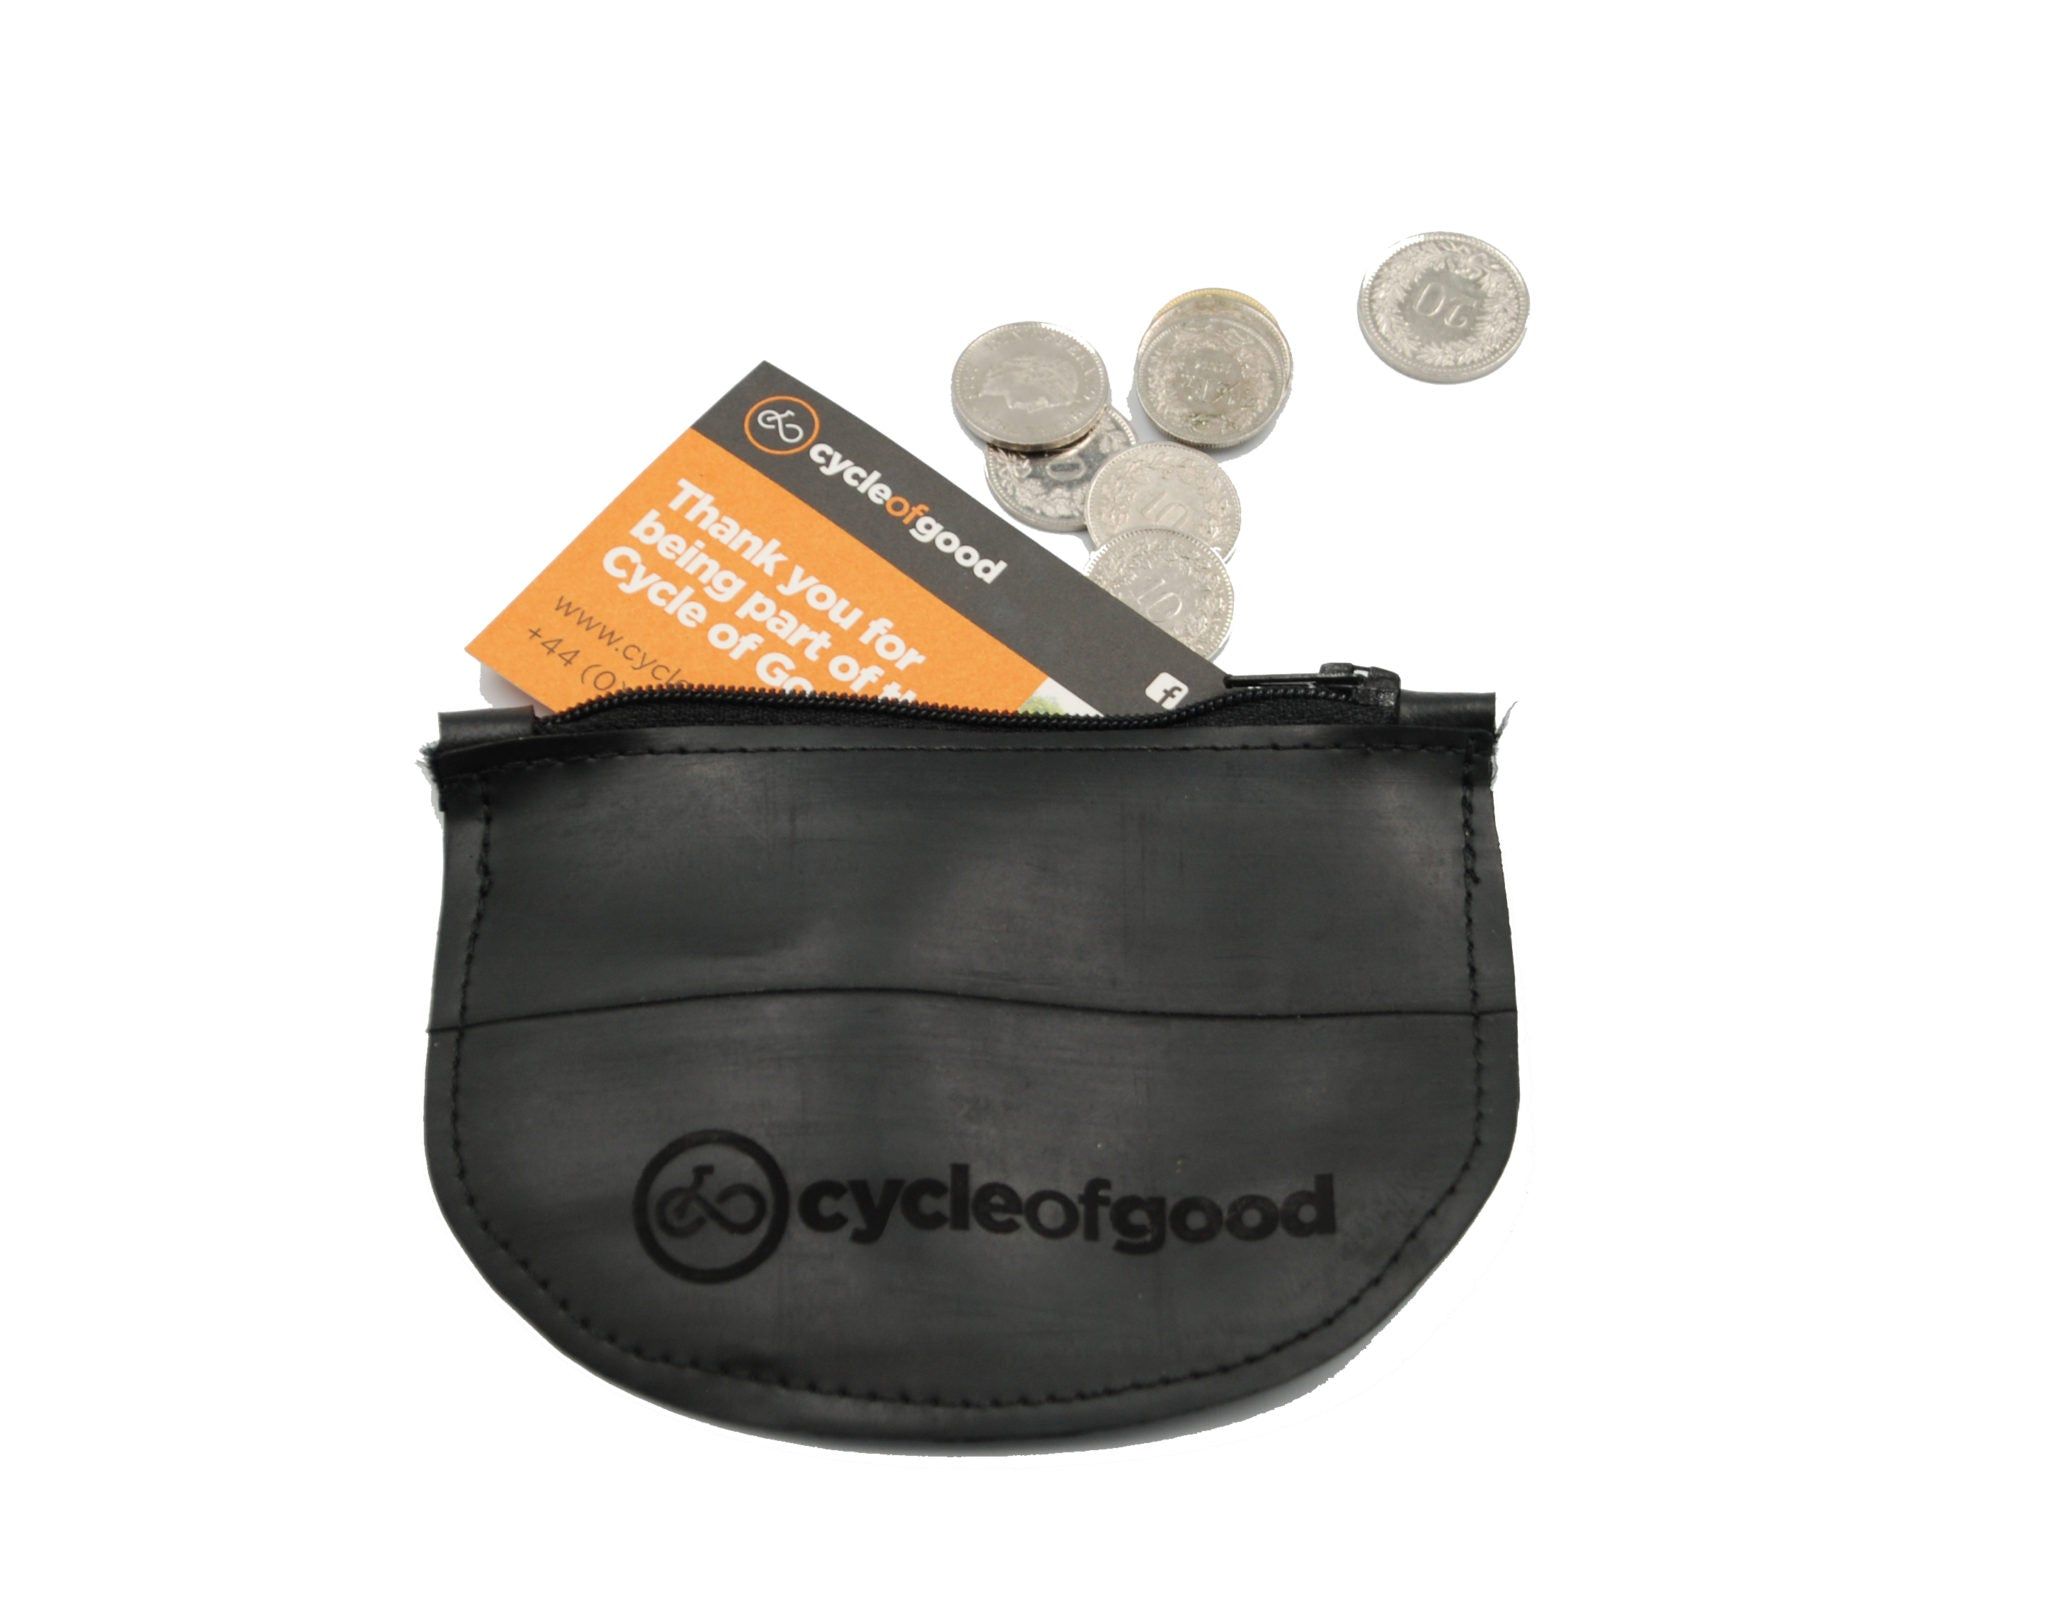 Cycle of Good - Coin Purse made from bike inner Tube